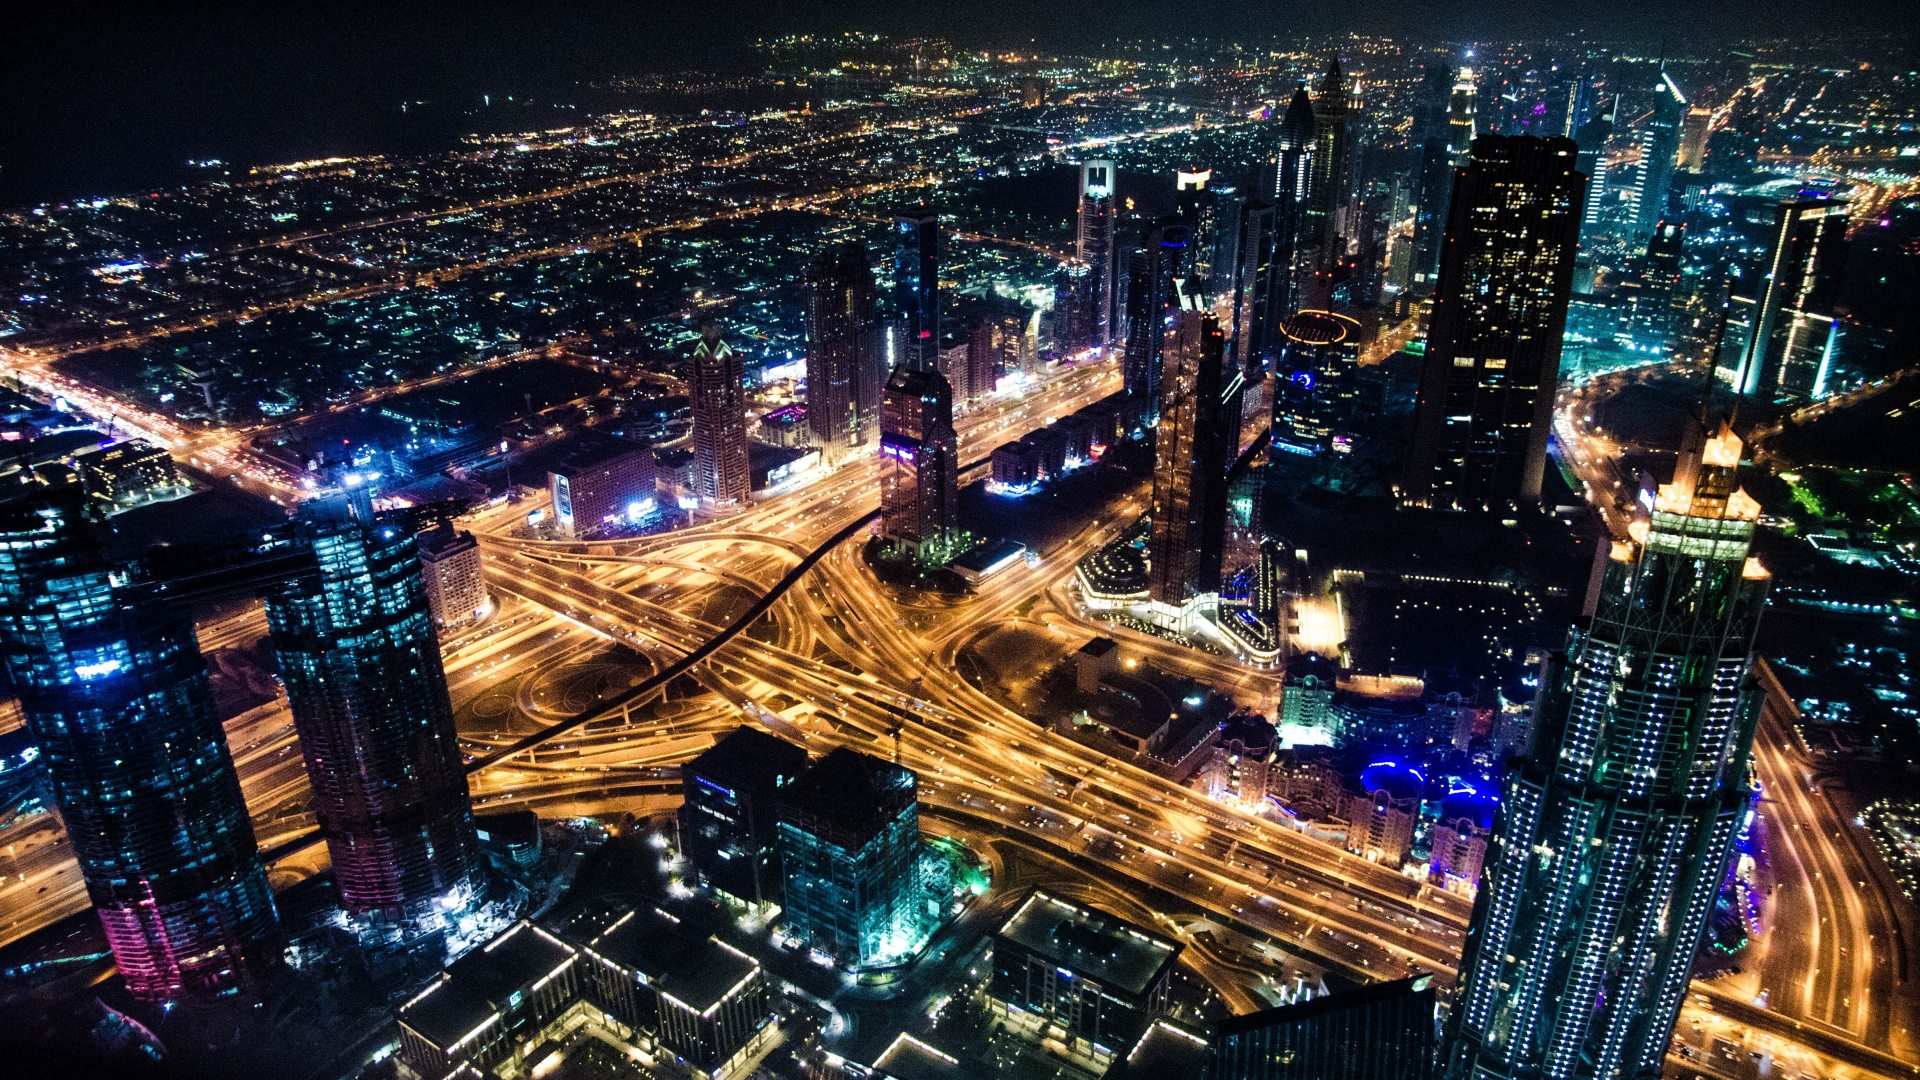 smart, well-lit city at night aerial photograph